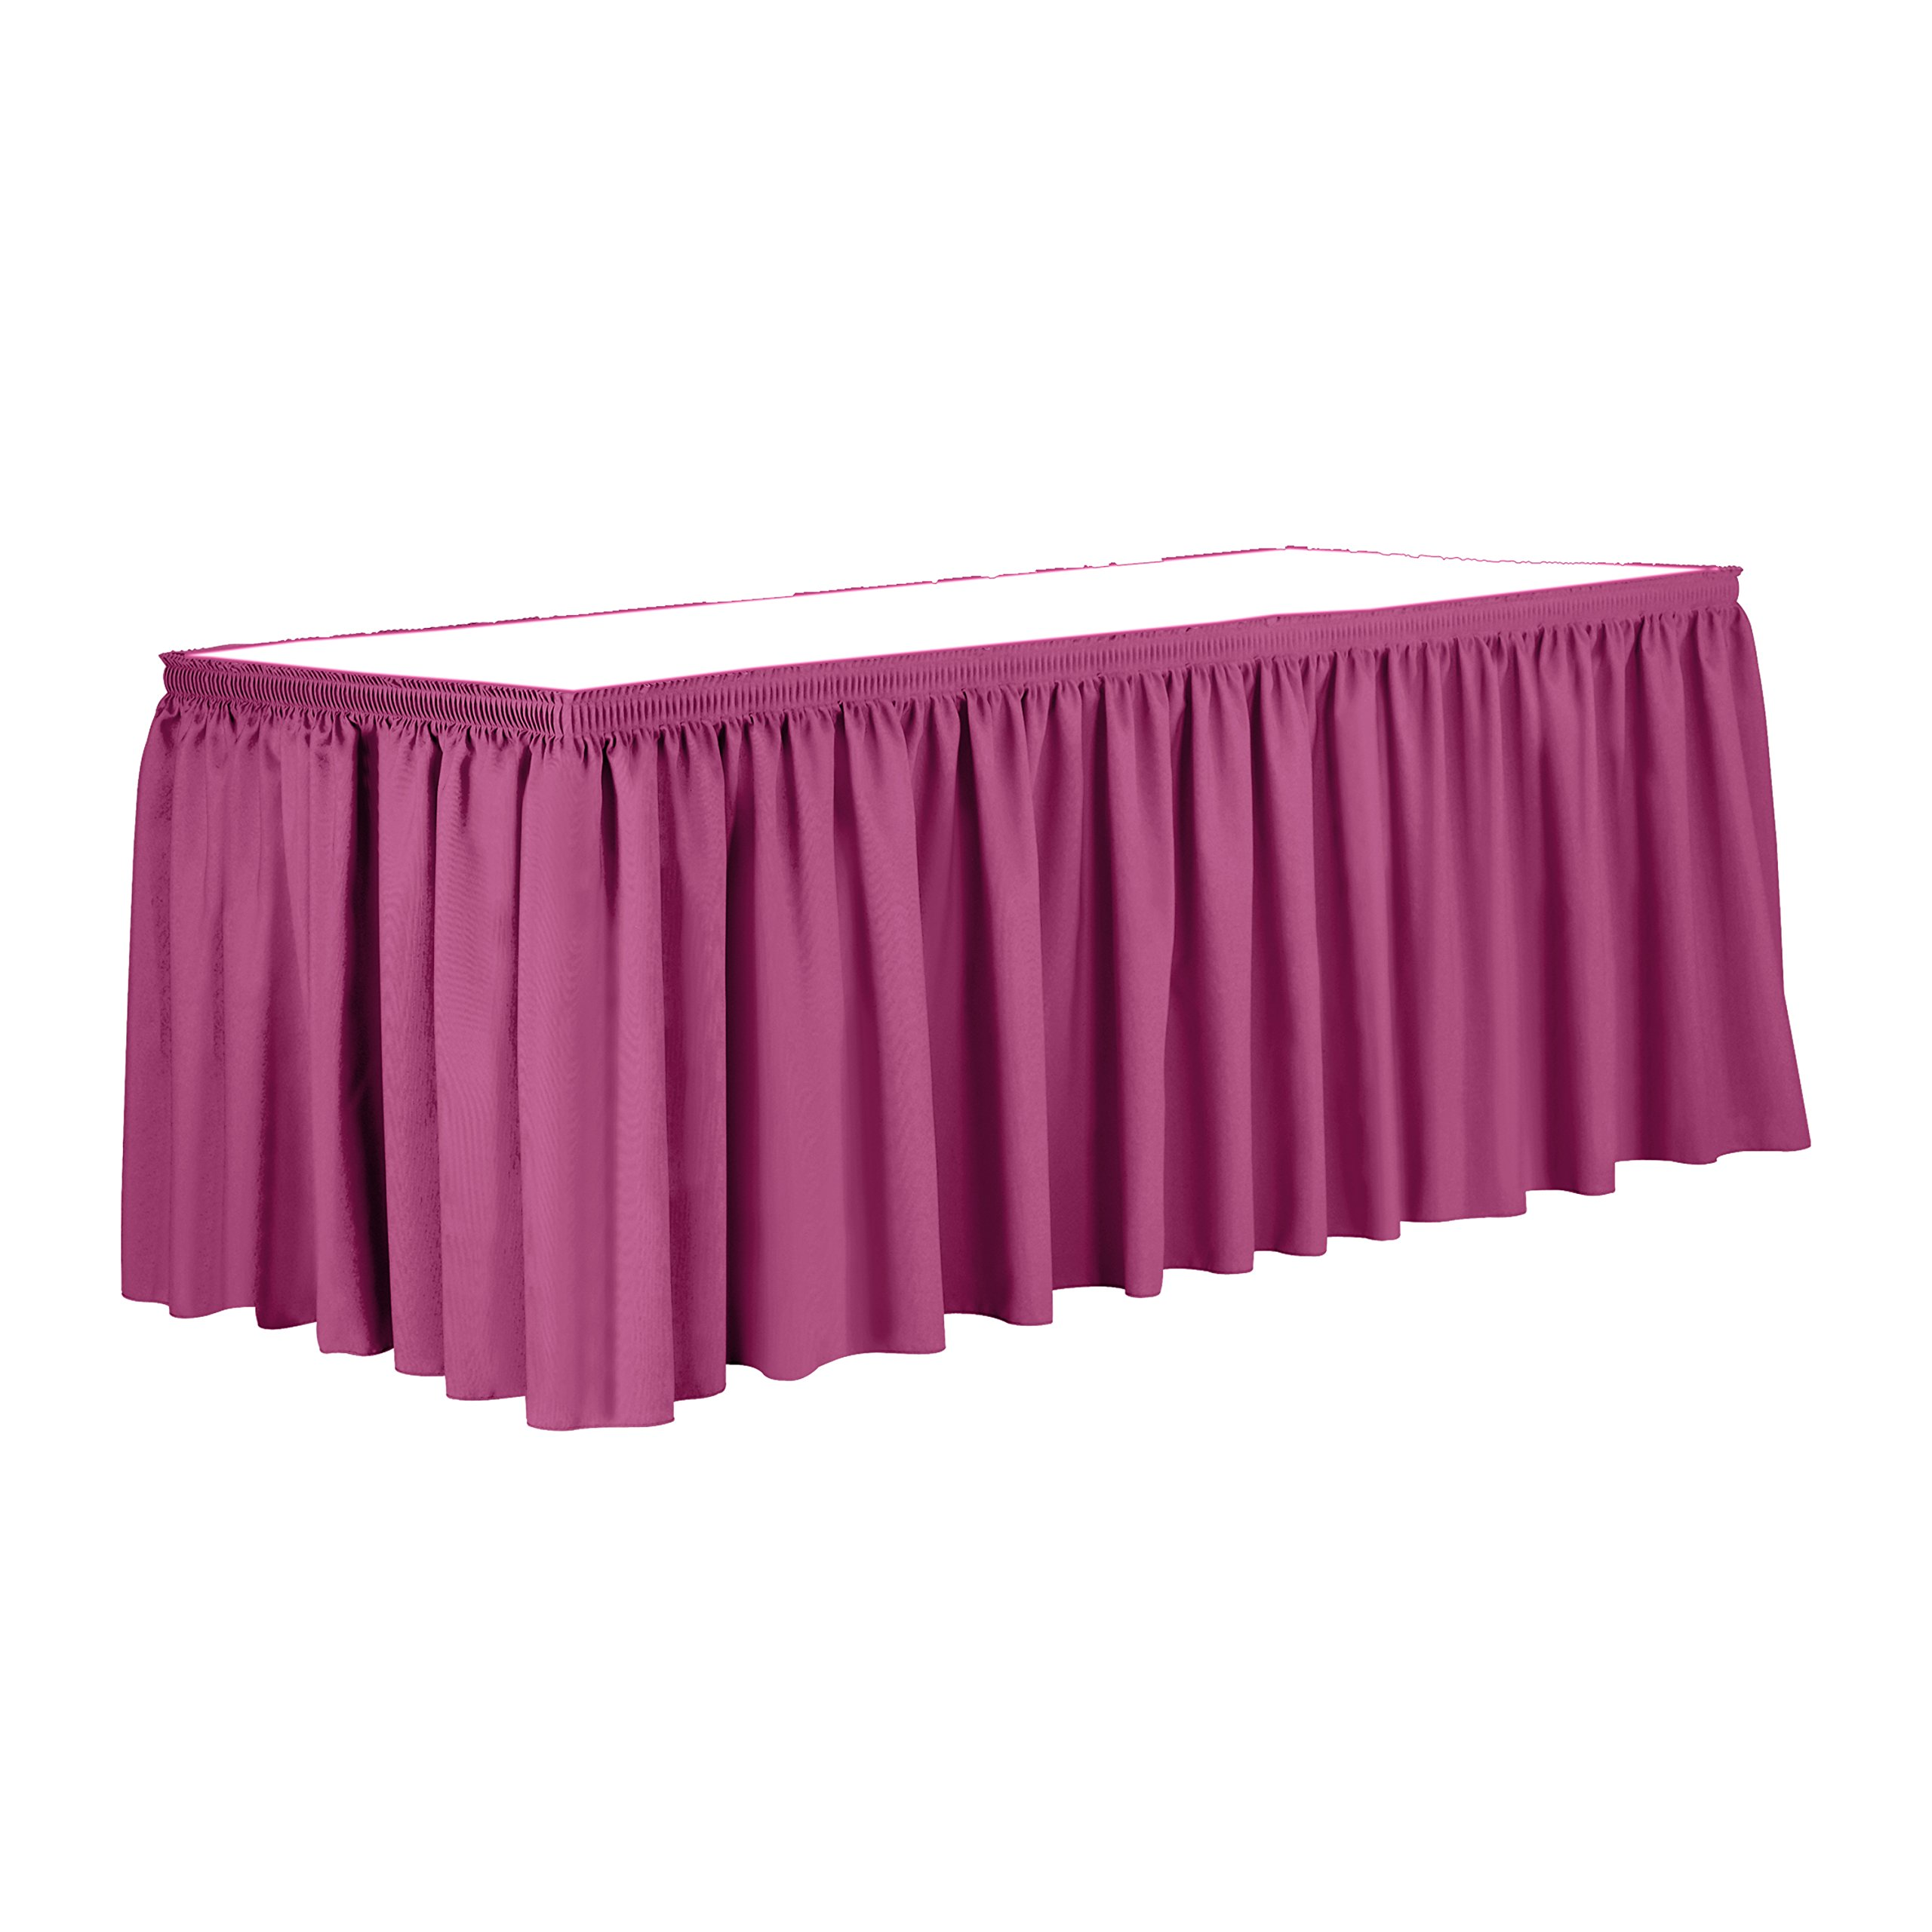 Ultimate Textile 21 ft. Shirred Pleat Polyester Table Skirt - 36'' Counter Serving Height, Watermelon